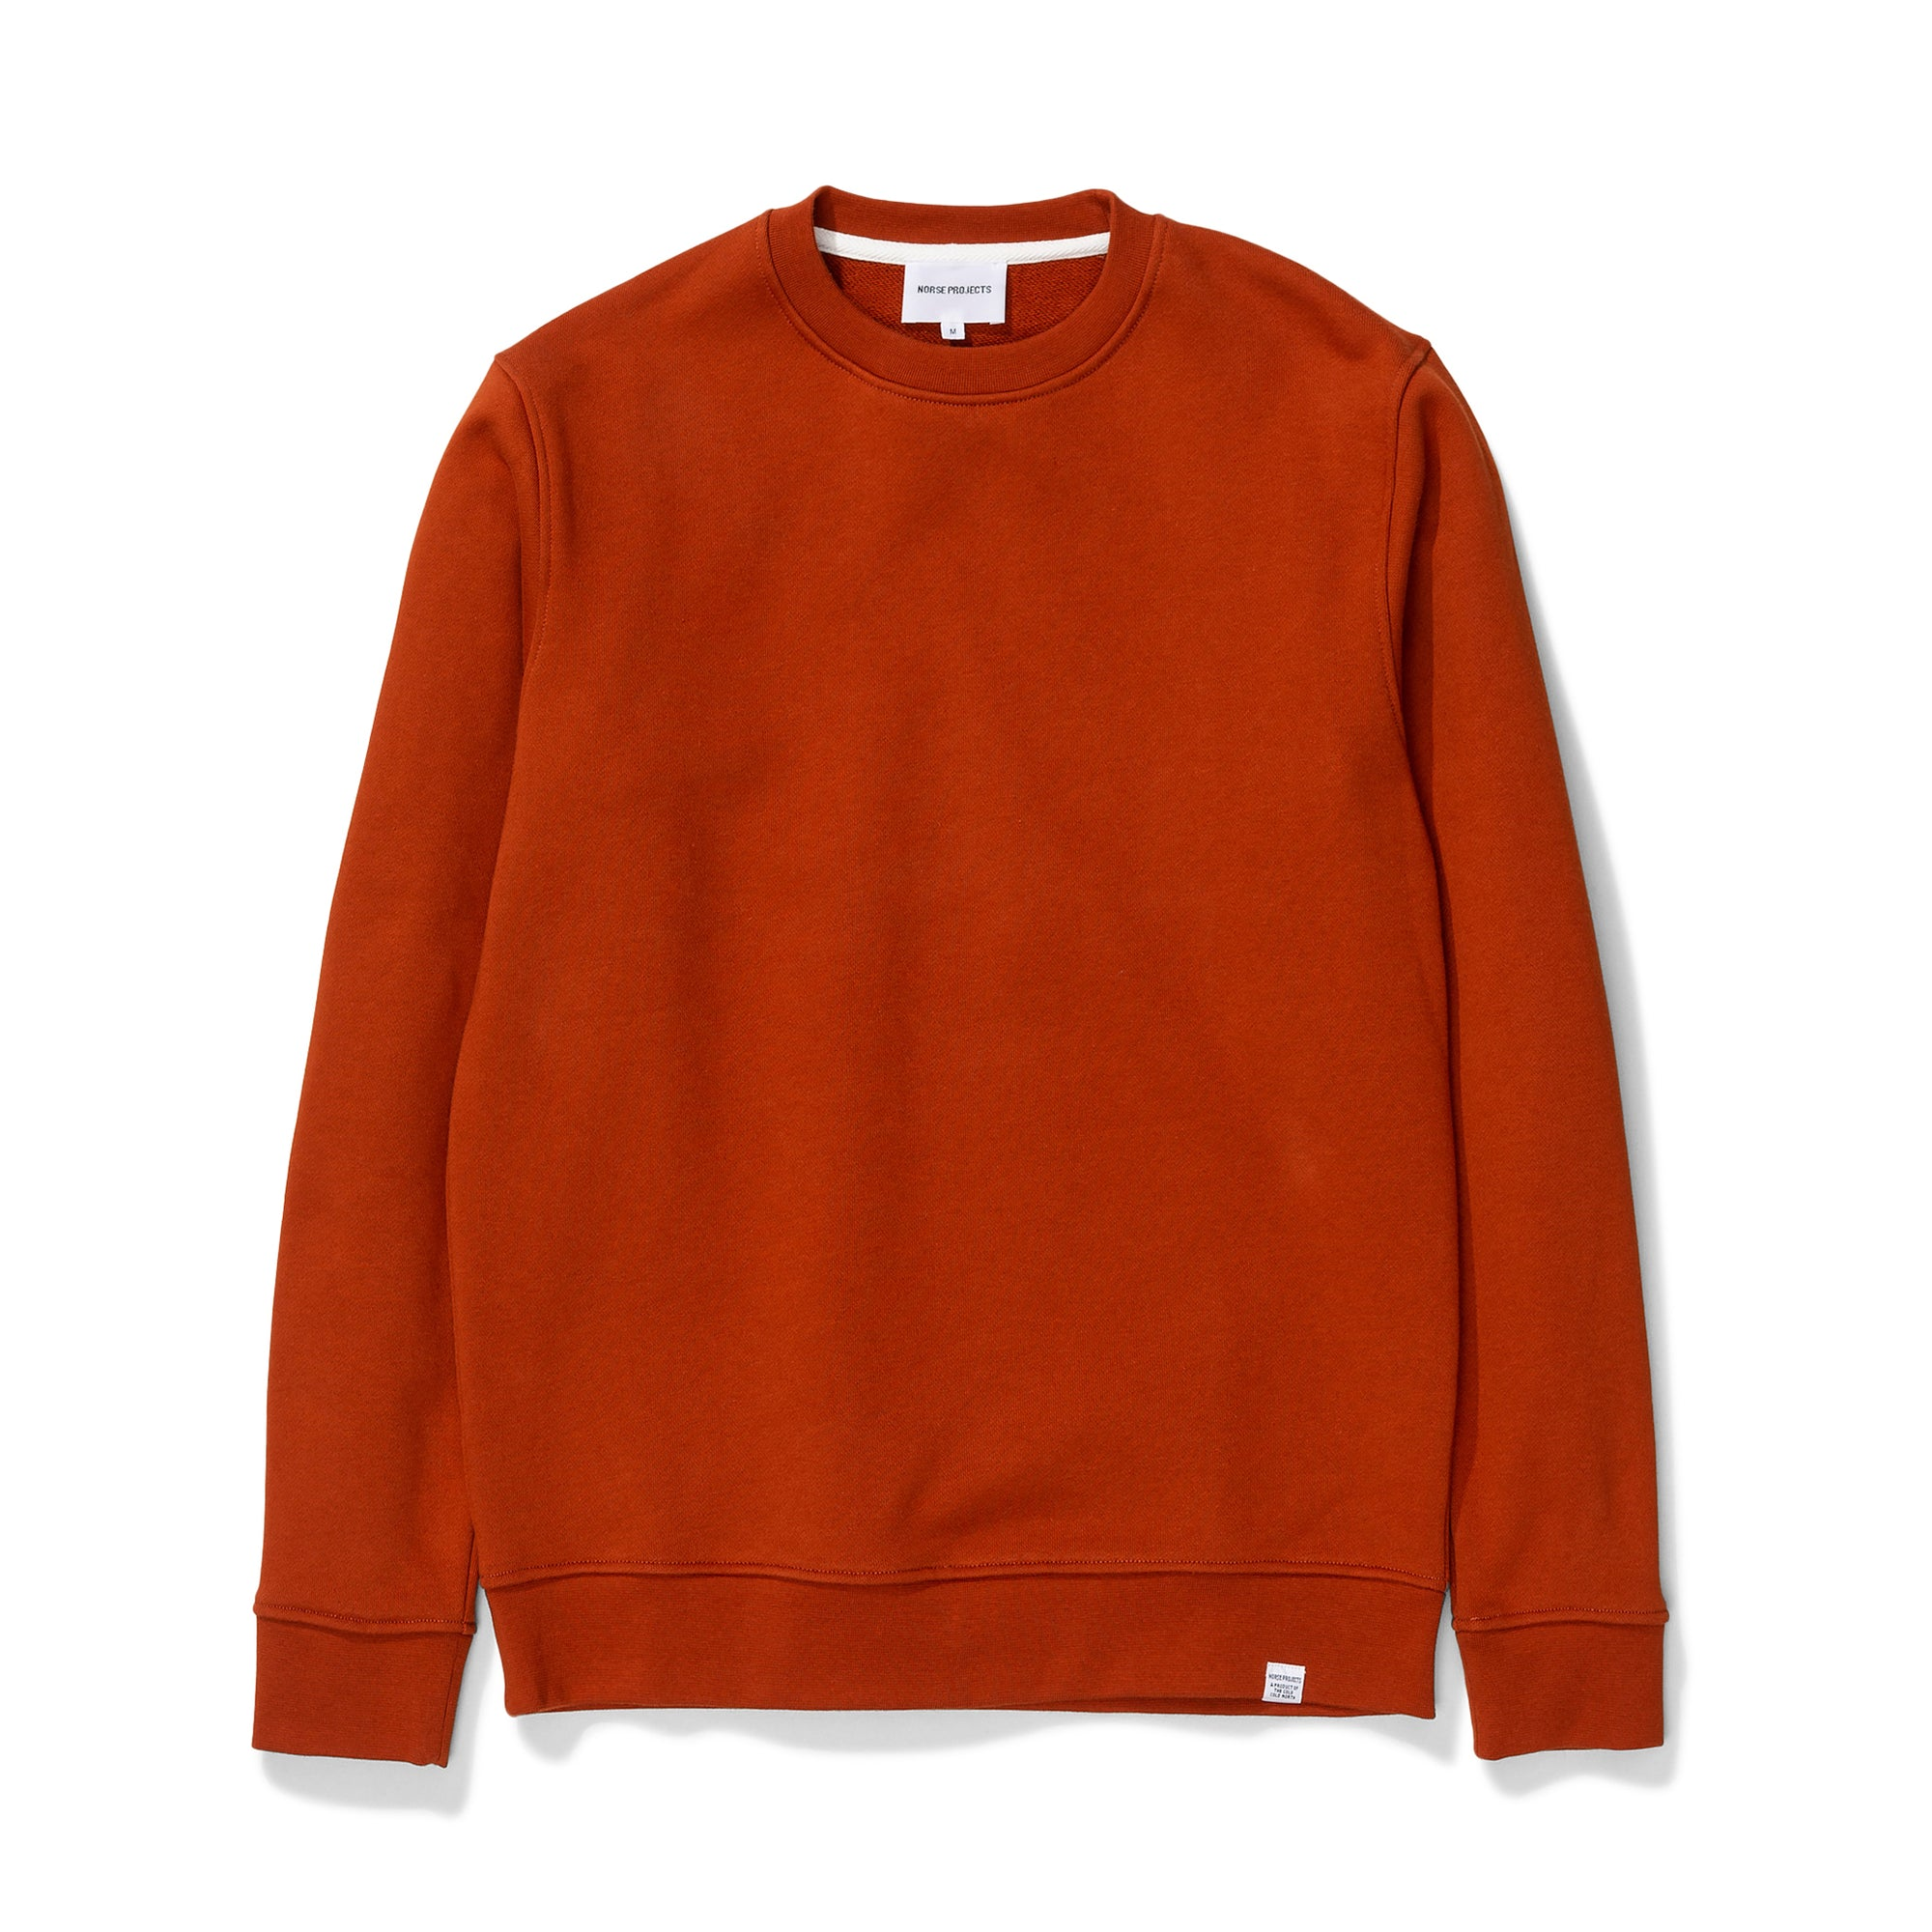 Norse Projects Vagn Classic Crew: Burnt Havtorn - The Union Project